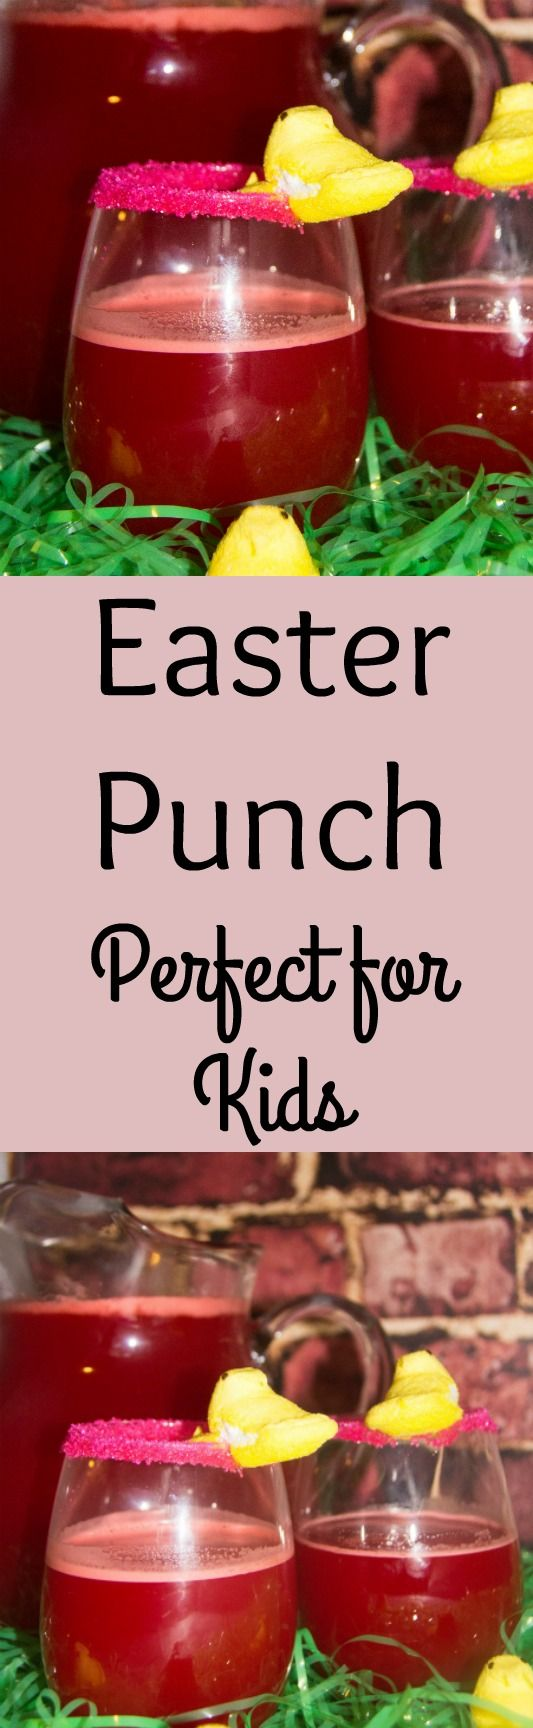 Whether you are looking for an Easter Punch recipe or a non-alcoholic punch recipe for anytime, this is an easy to make to make punch recipe for kids.